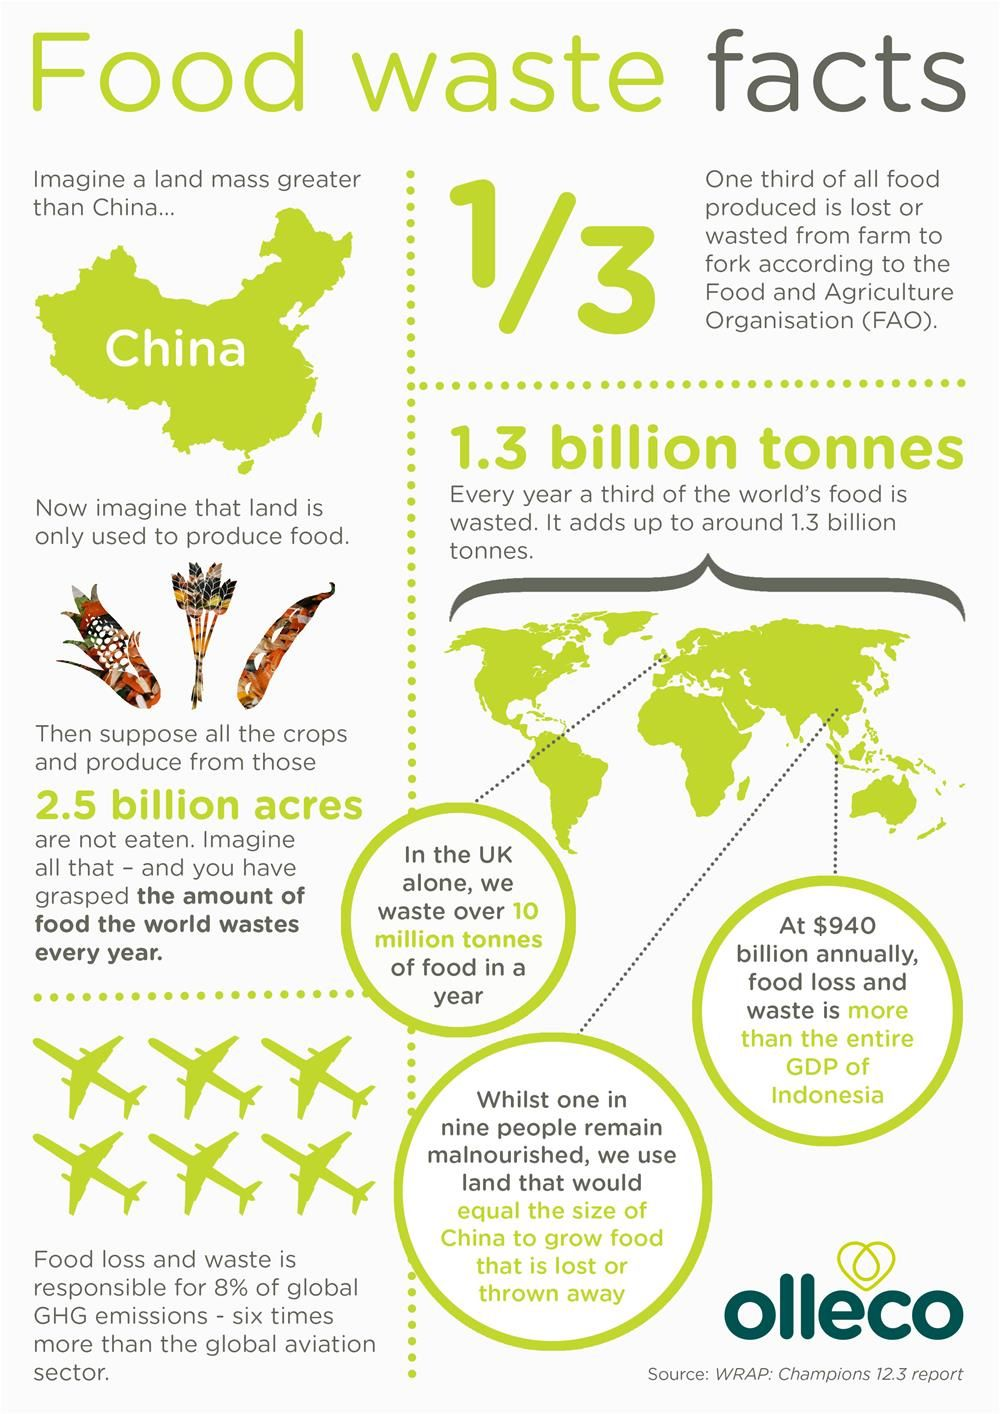 How To Stop Food Waste Designing Convenient Solutions And Local Food Sharing Programs Food Waste Infographic Food Waste Poster Food Waste